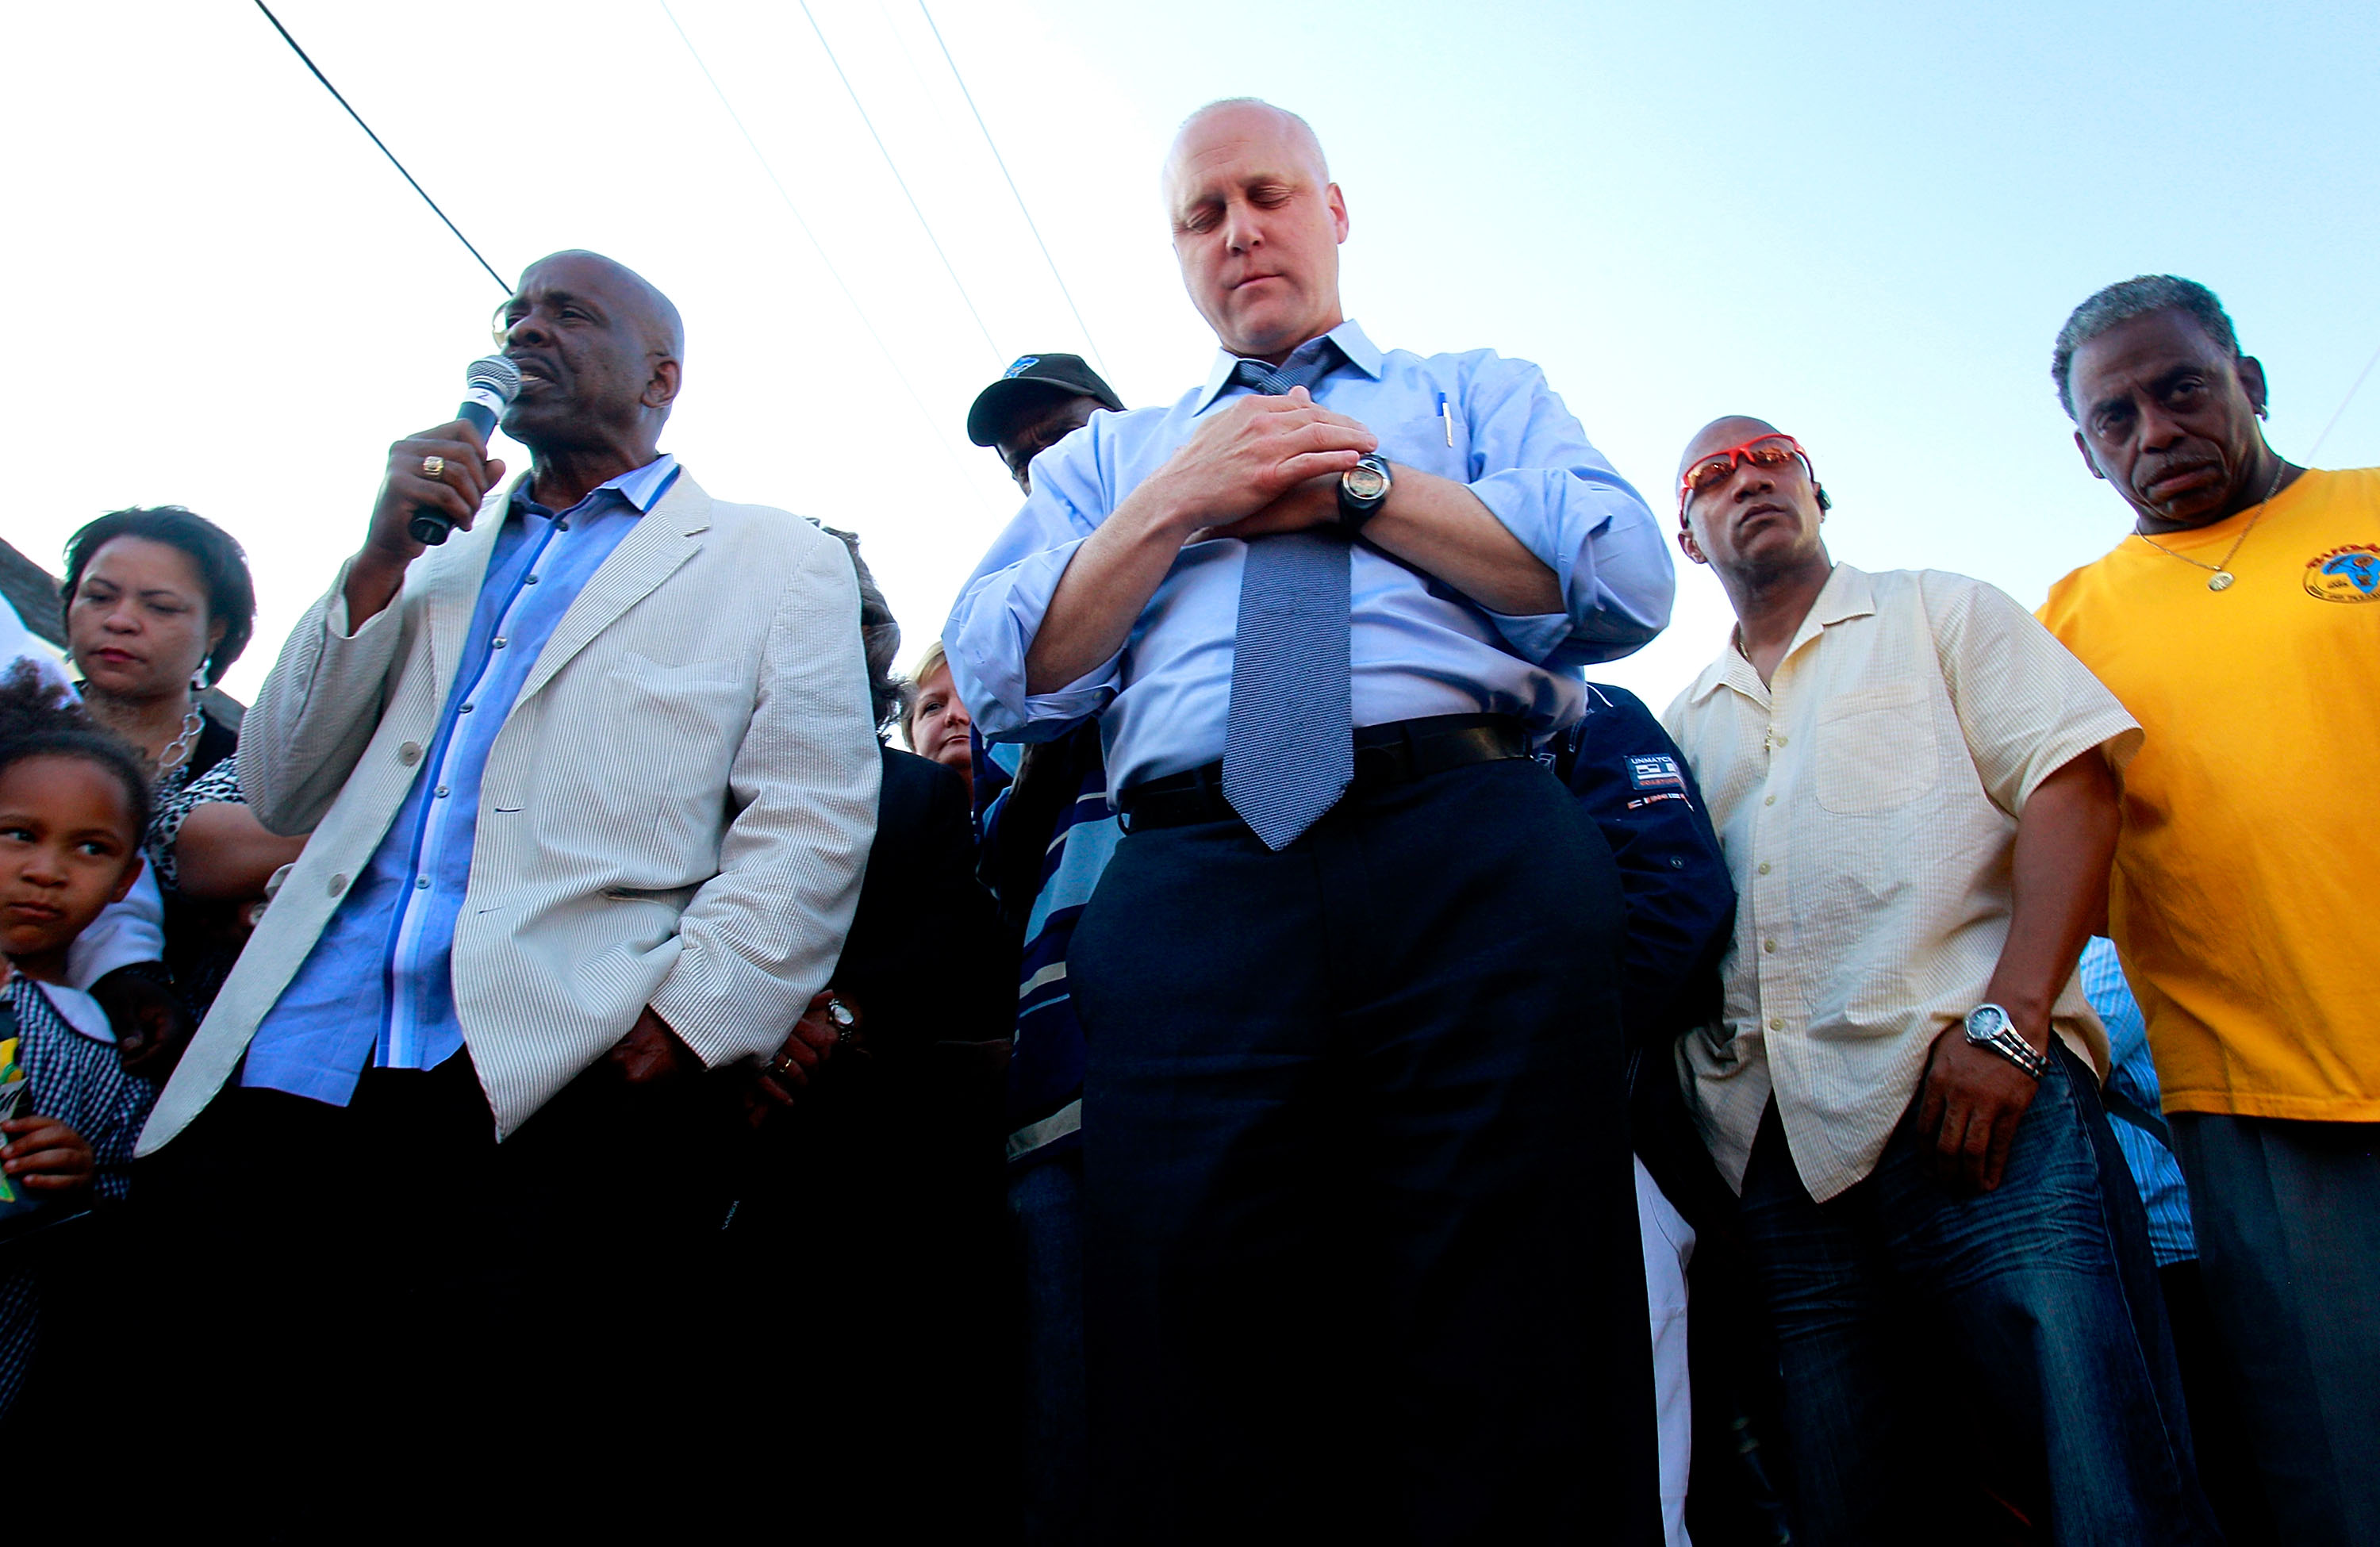 New Orleans Mayor Mitch Landrieu recommends 3 books that illuminate America's history of racial inequality